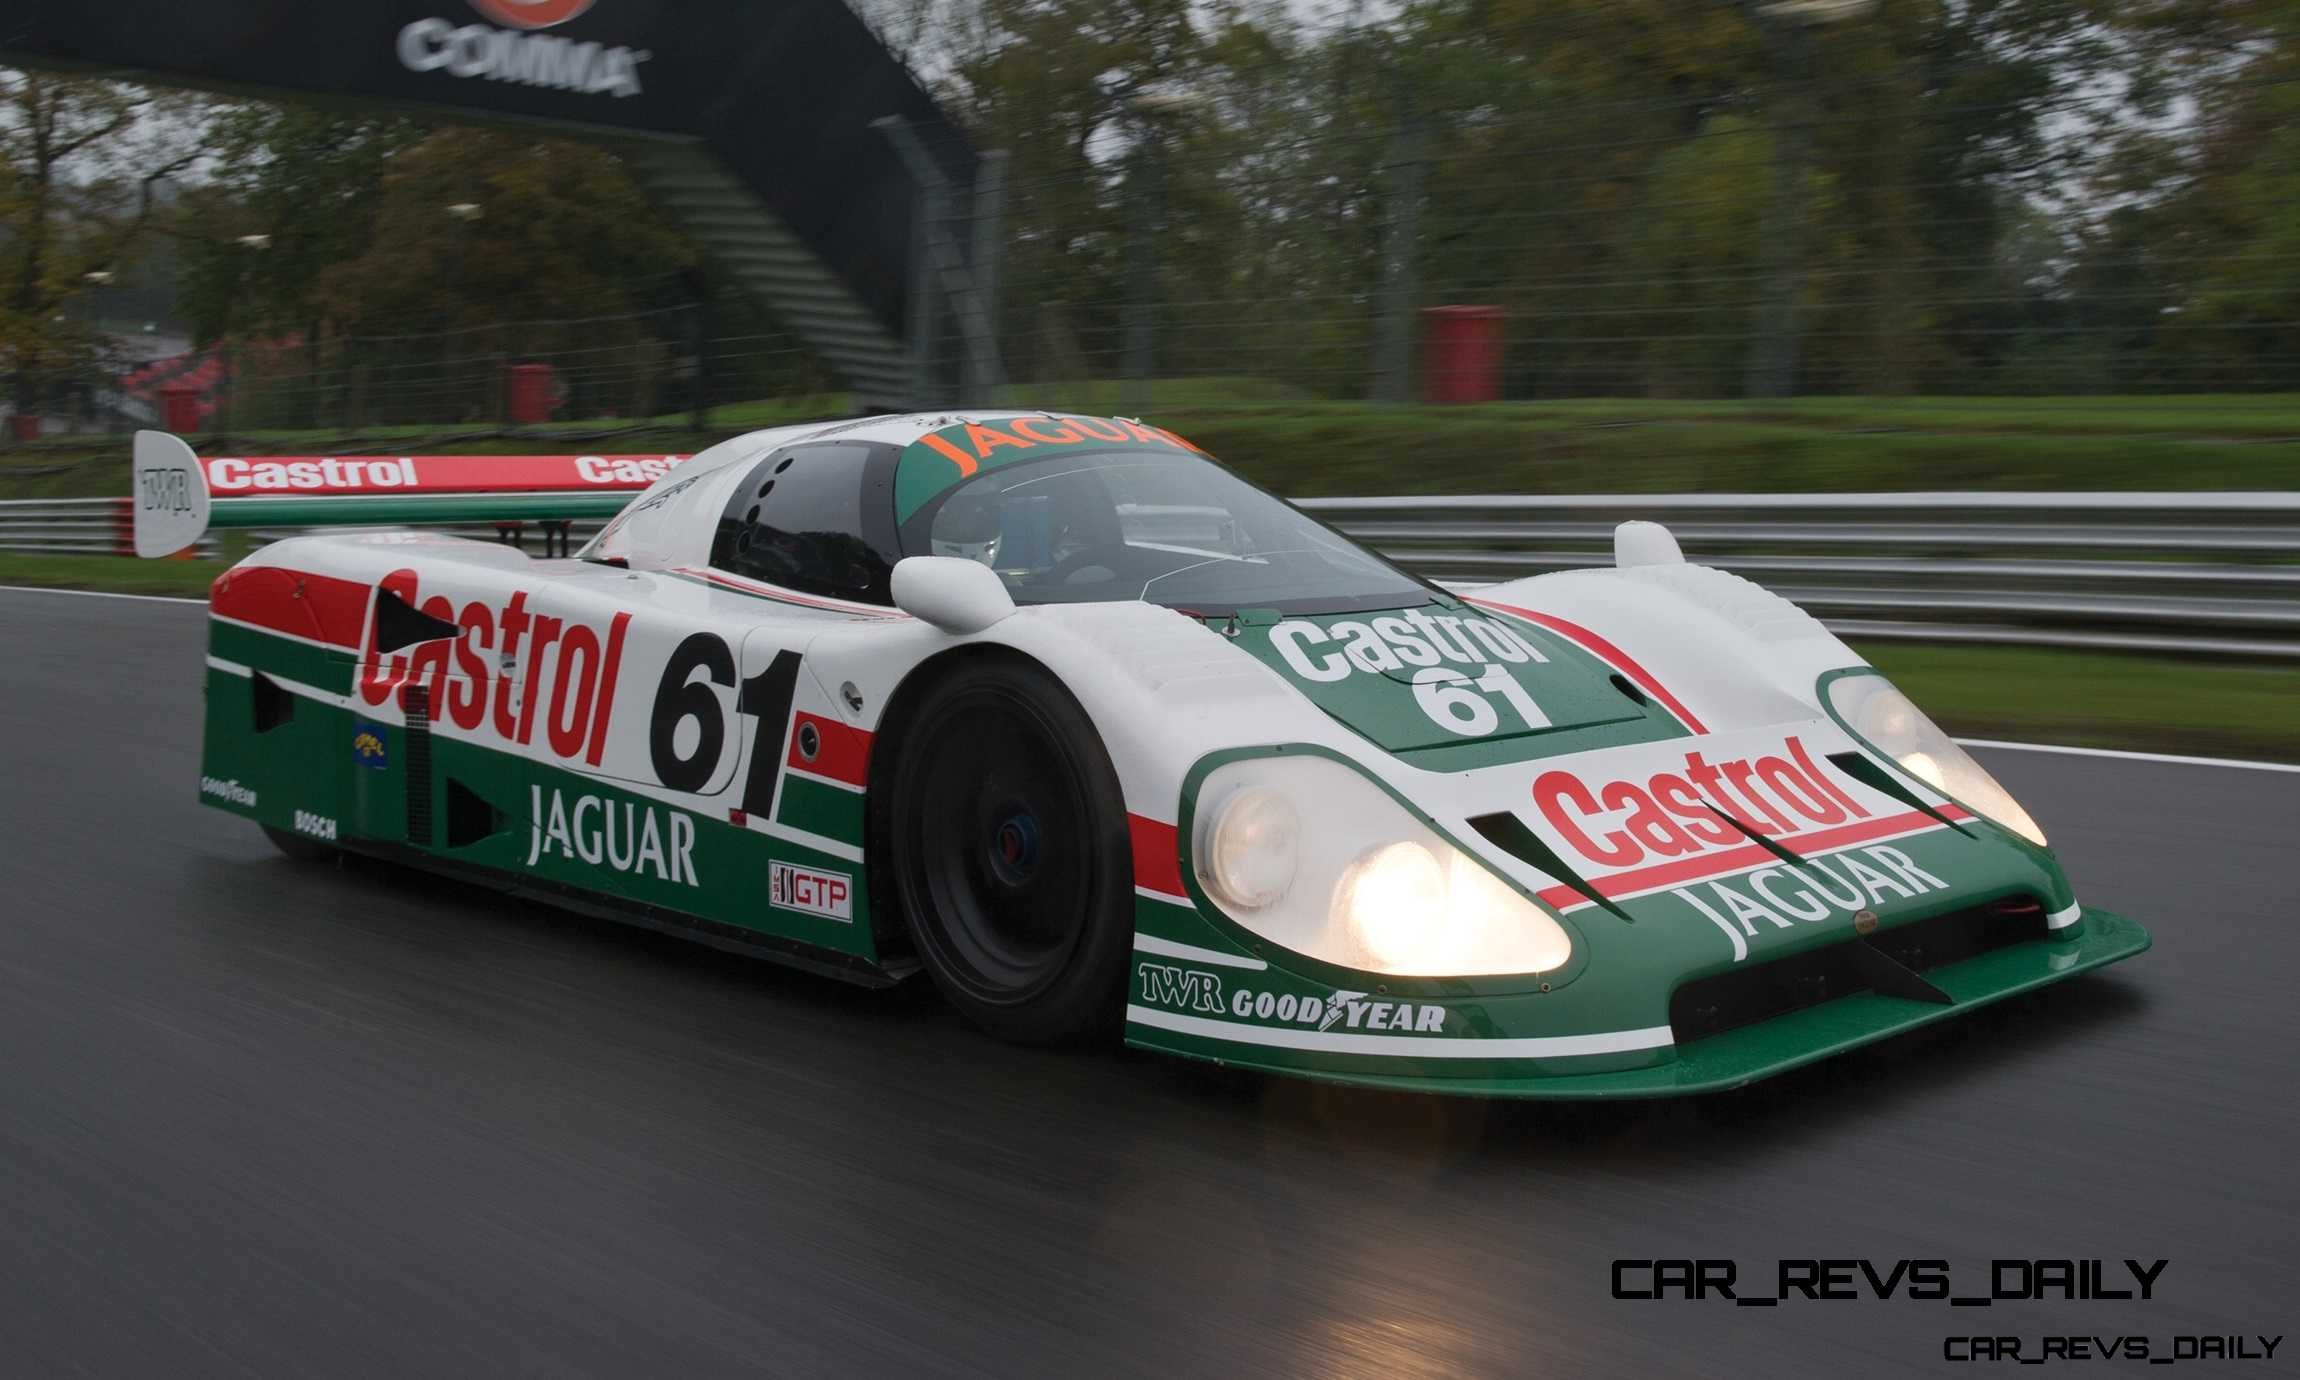 RM Amelia Island Preview - 1988 Jaguar XJR-9 22